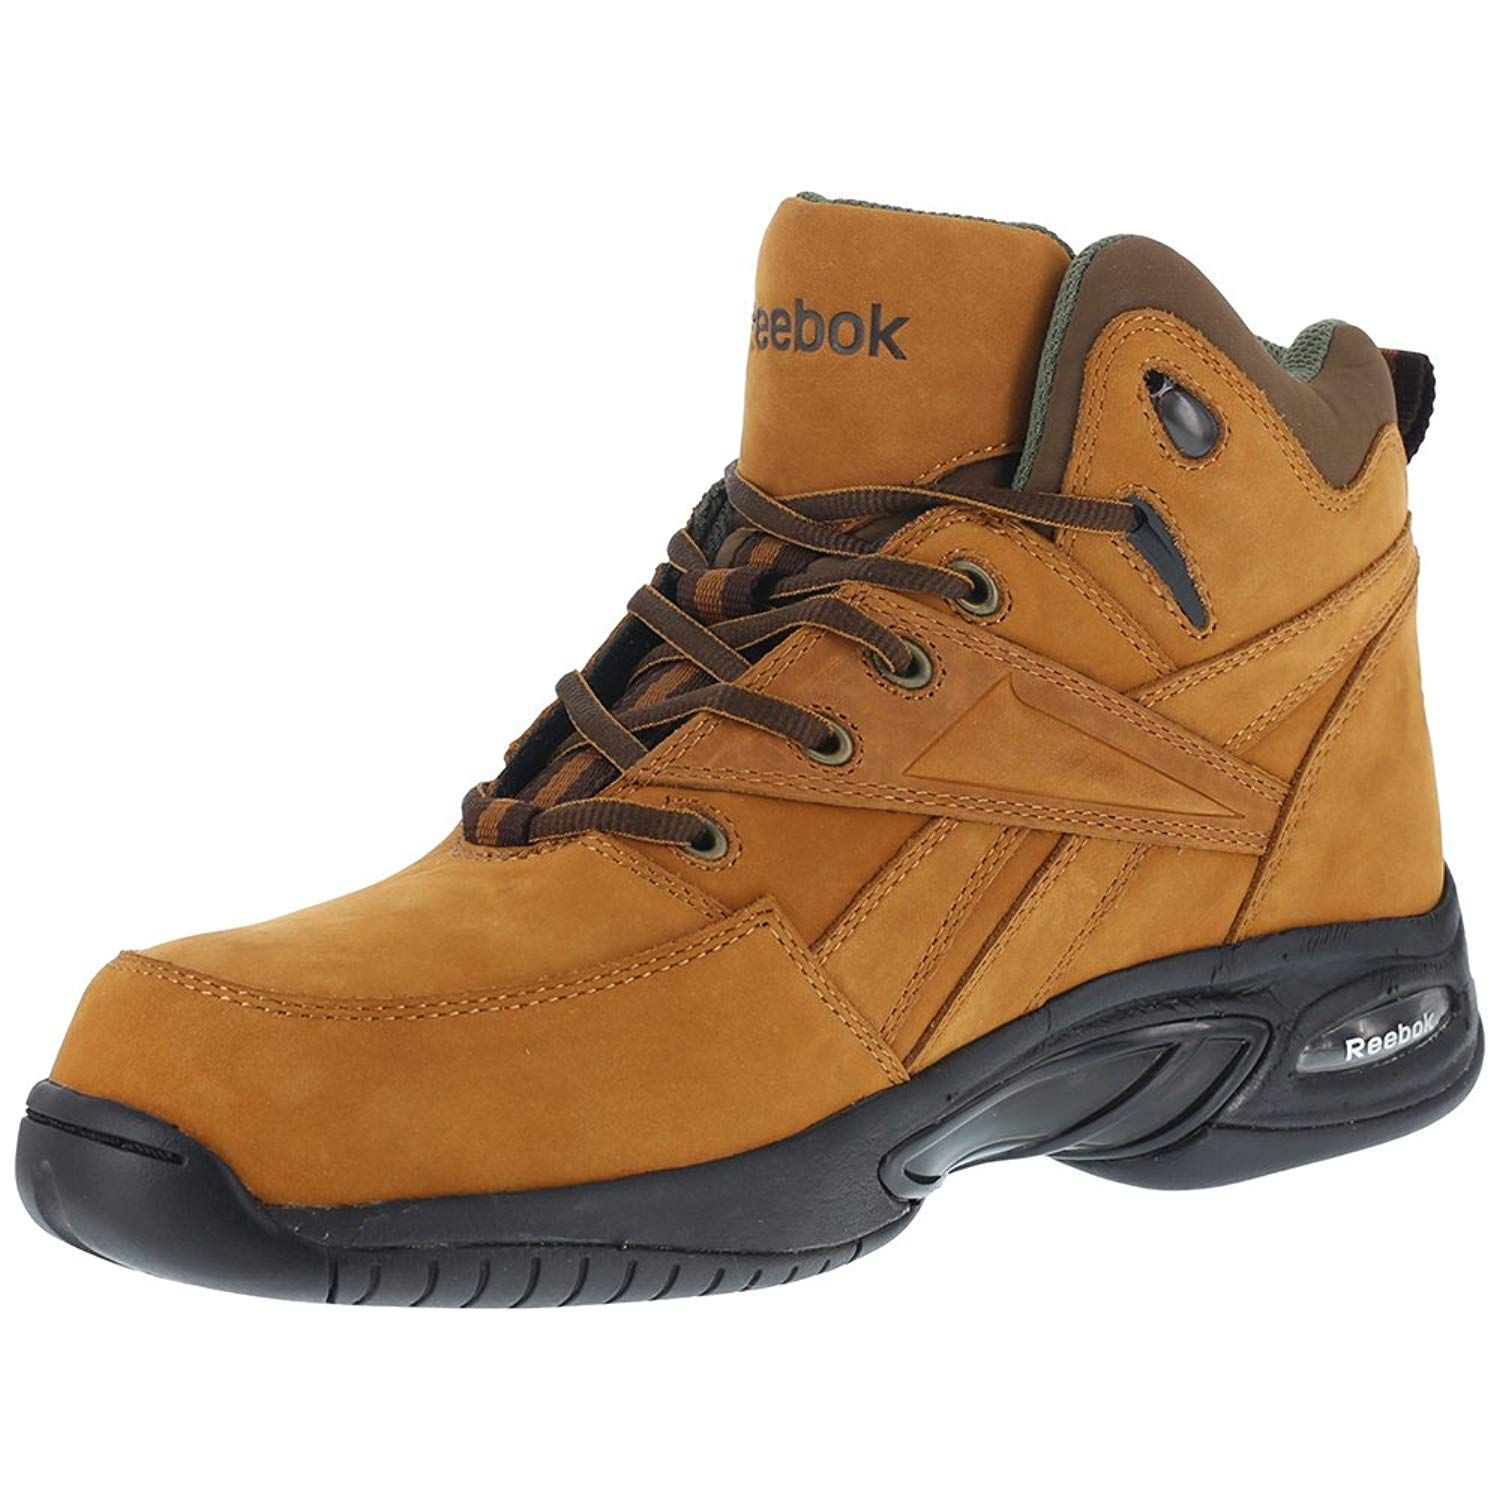 537bdf70b1b RB4388 Reebok Men s Classic Performance Safety Boots - Golden     You can  get additional details at the image link.  CampingBoots